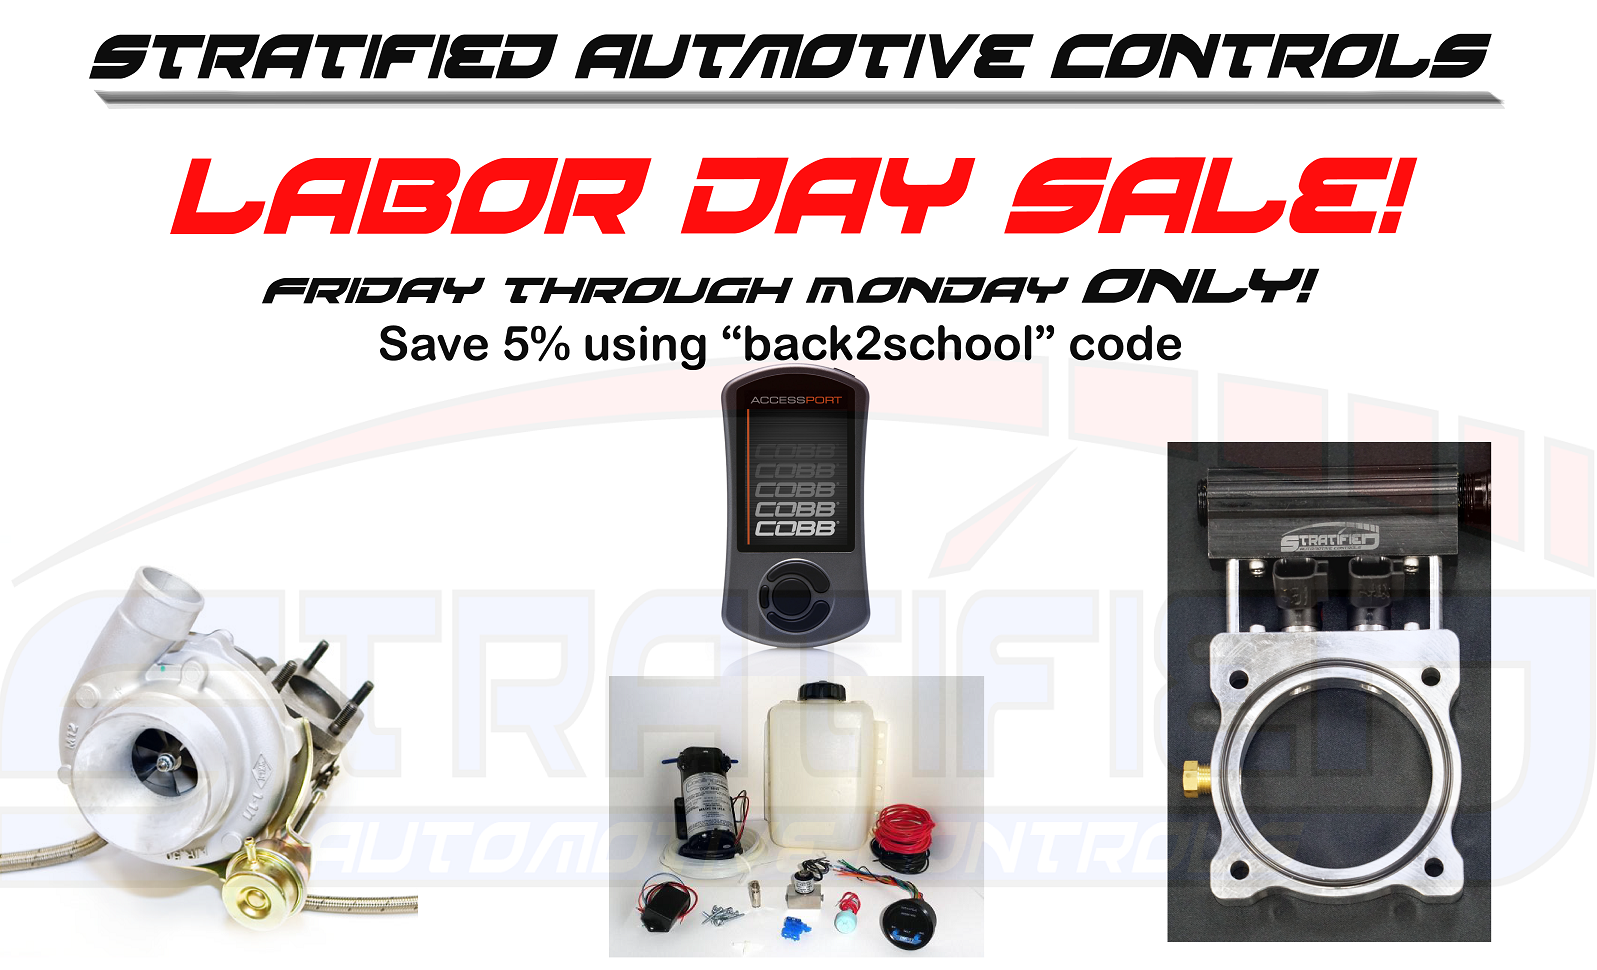 Big Labor Day Sale at Stratified! - Mazdaspeed Forums